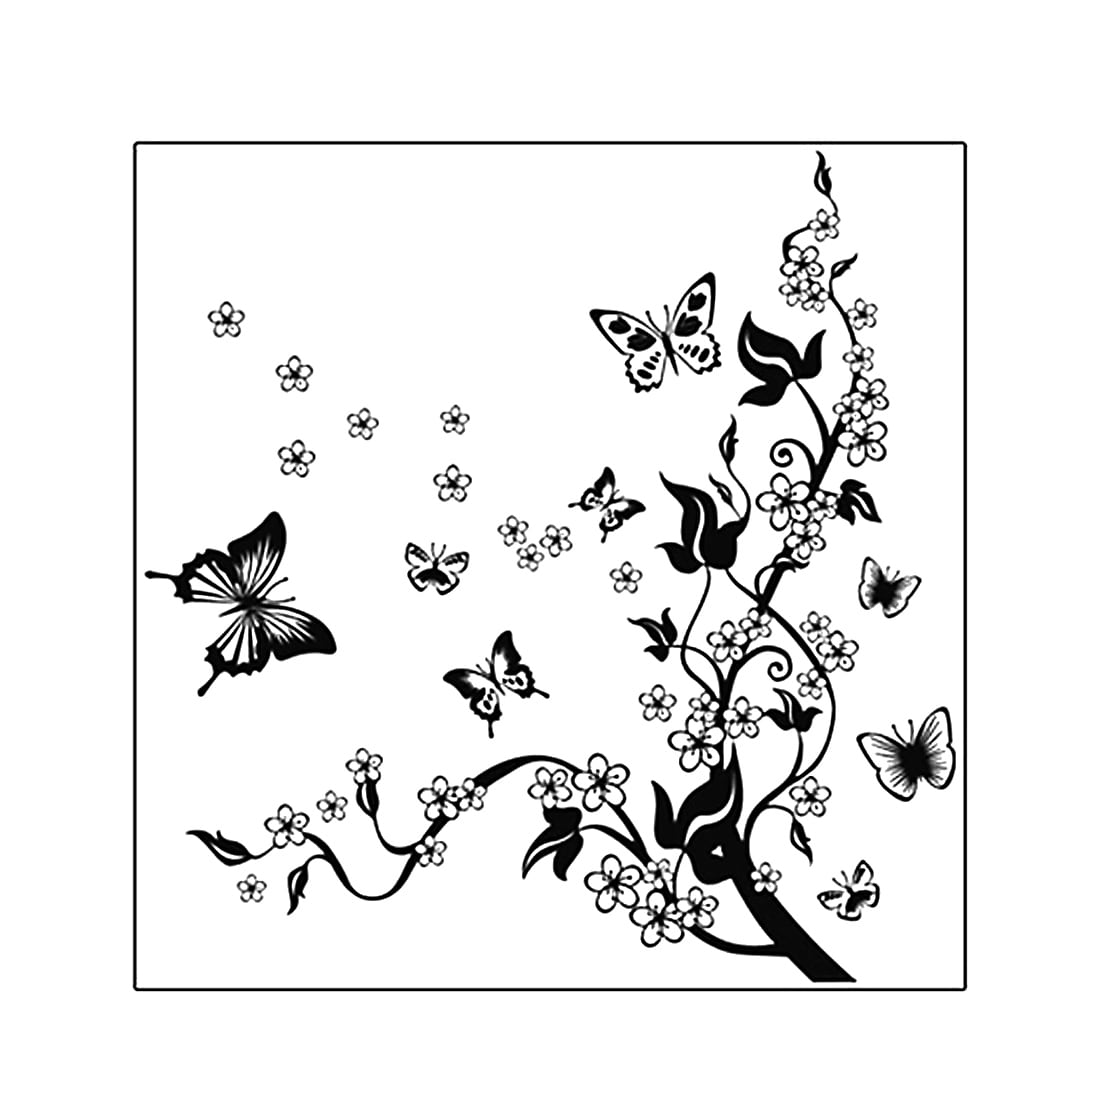 Shop Black Friday Deals On Butterfly Flower Pattern Diy Home Bedroom Decal Wall Decor Sticker Multi Color Overstock 28888204